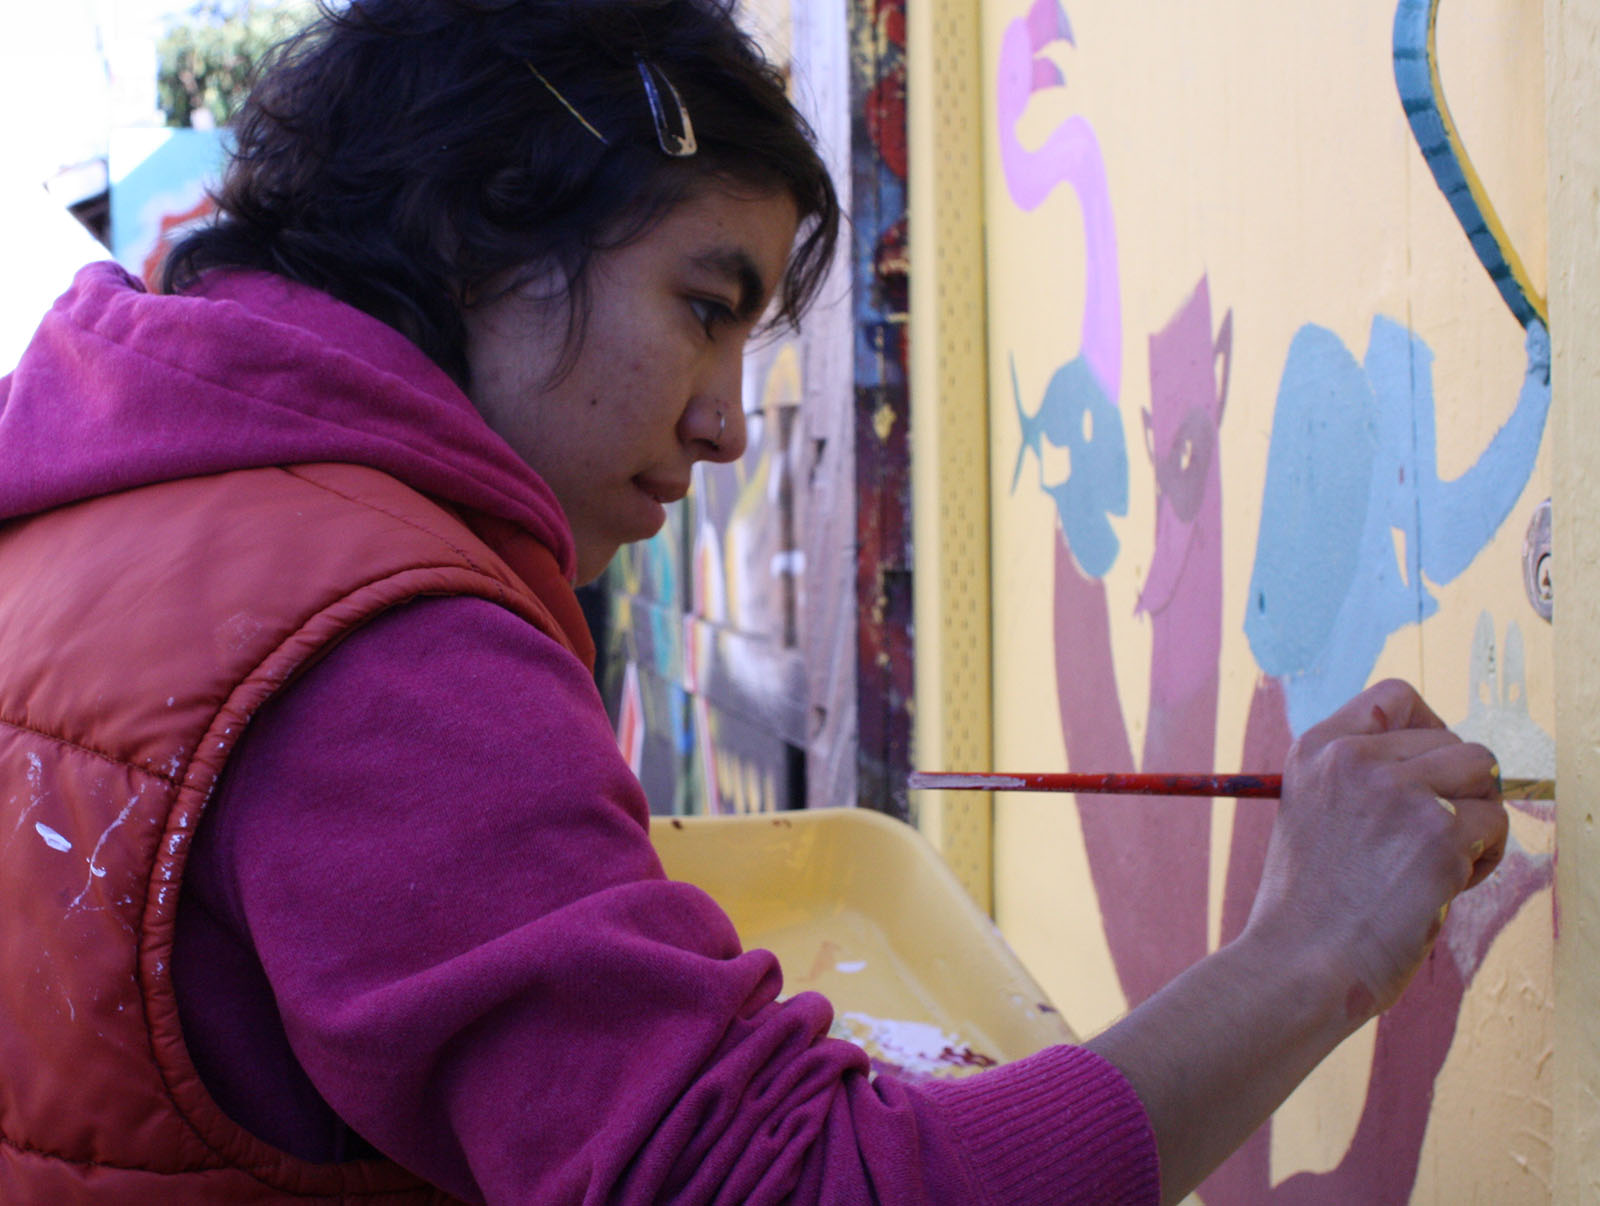 A woman paints a new mural in the alley.